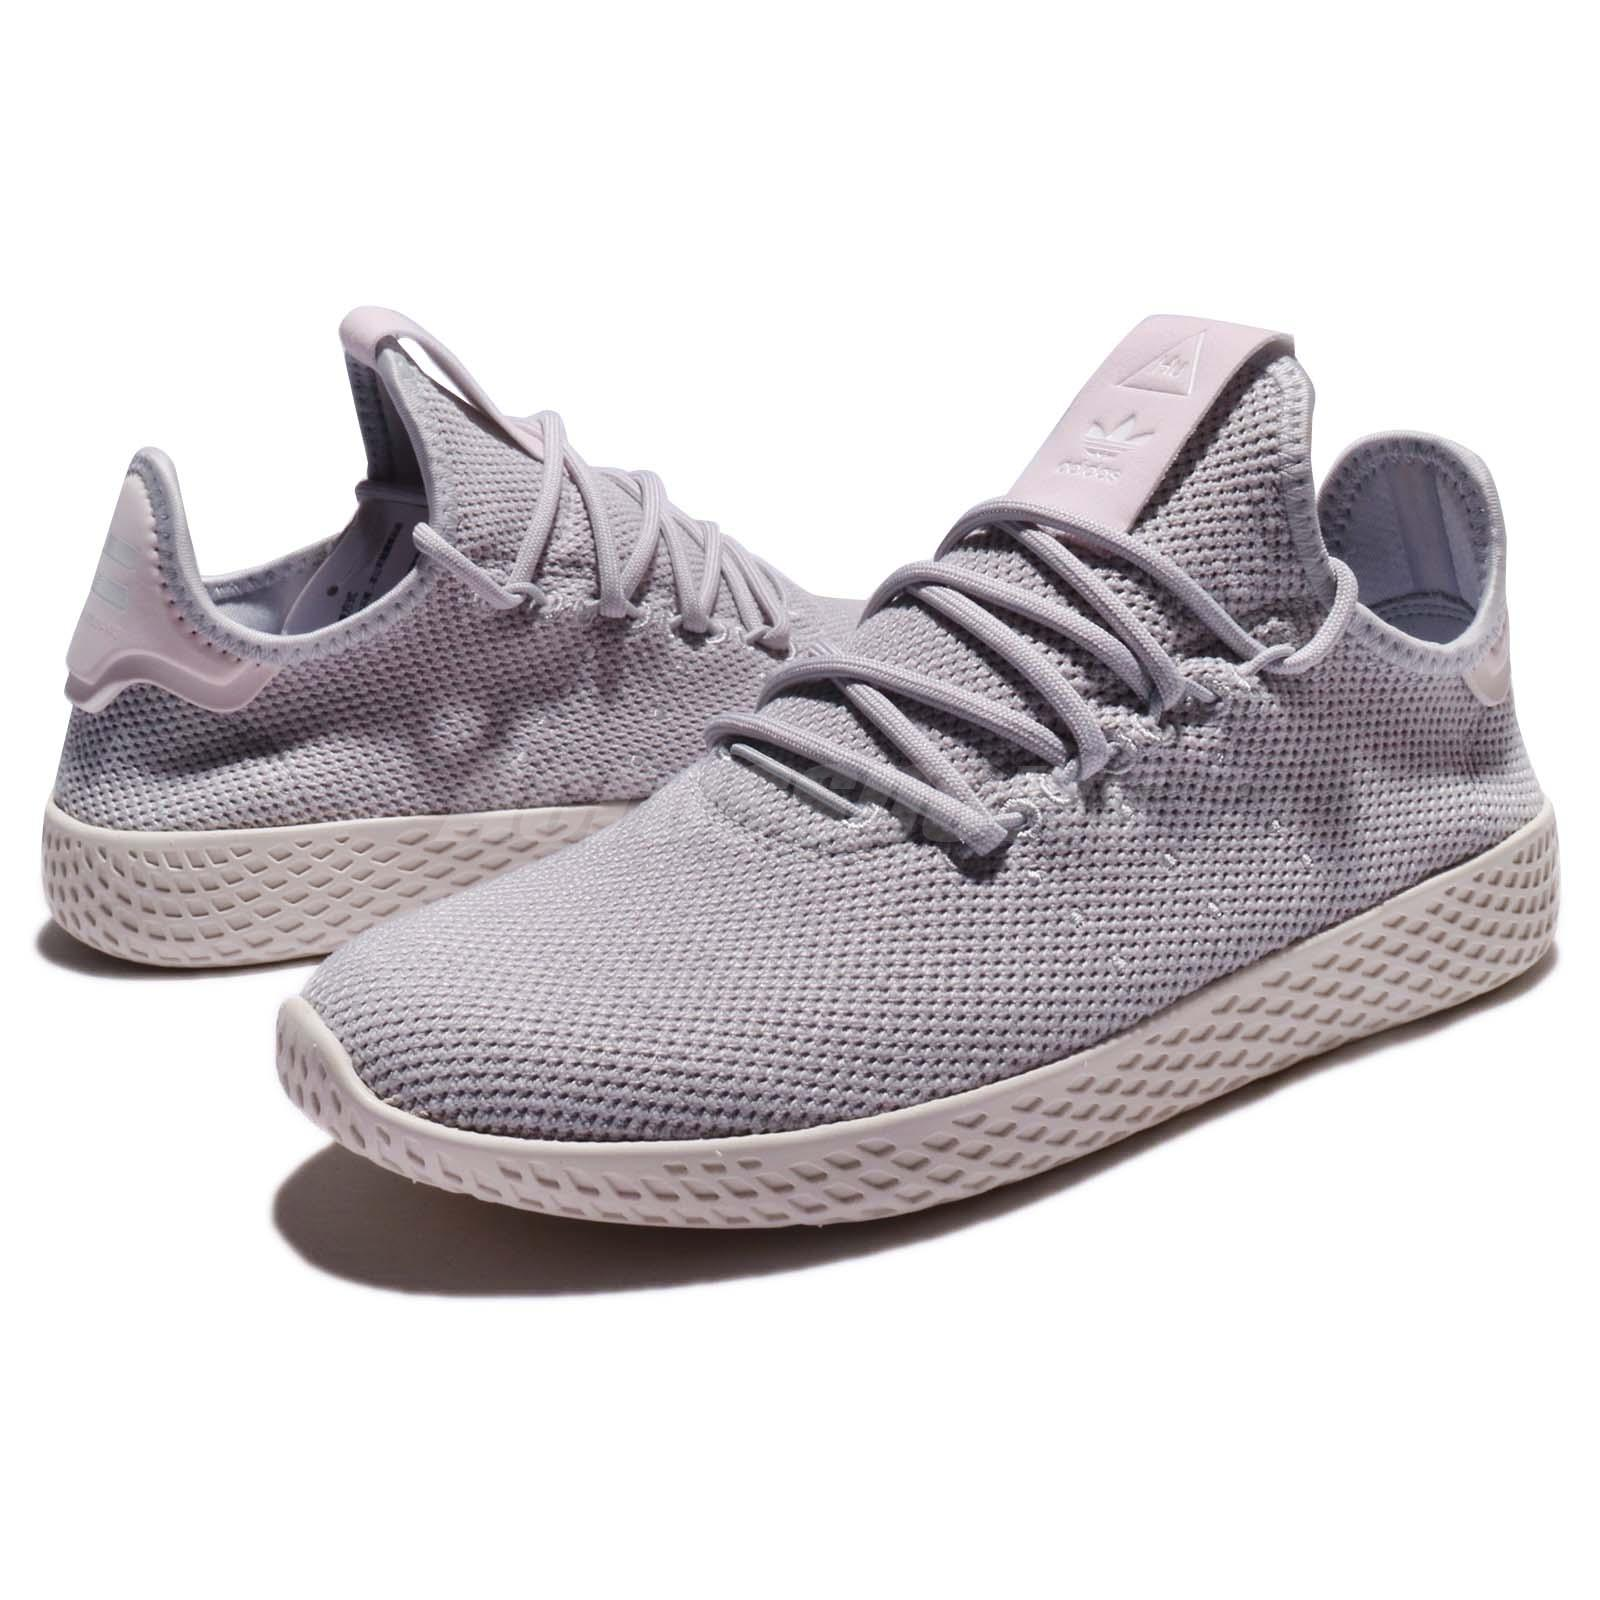 860f6dac2 Details about adidas Originals PW Tennis Hu W Pharrell Williams Grey Chalk  Women Shoes DB2553